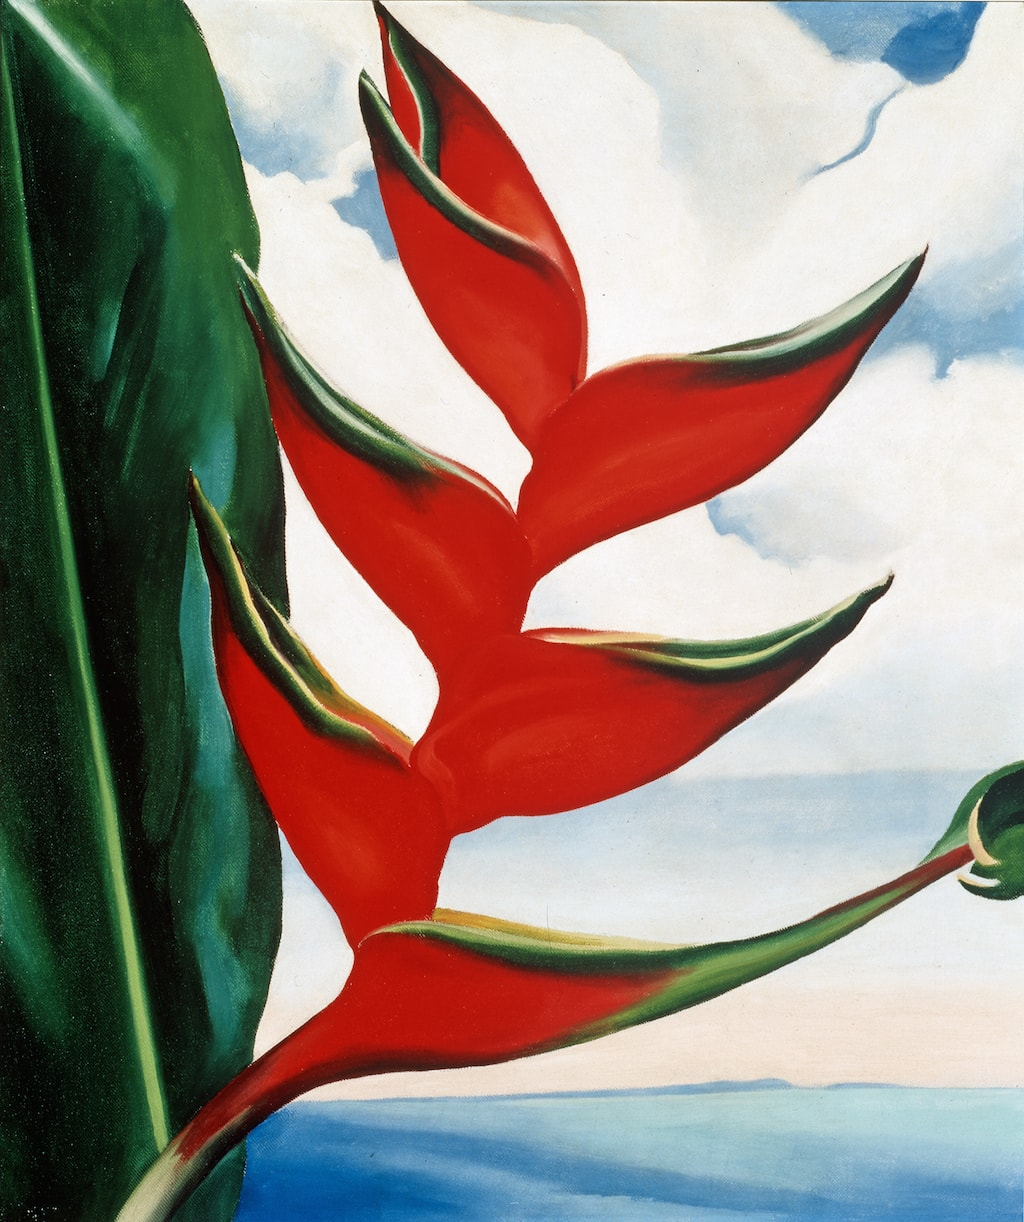 Georgia O'Keeffe, Heliconia—Crab's Claw Ginger, 1939. Collection of Sharon Twigg-Smith.